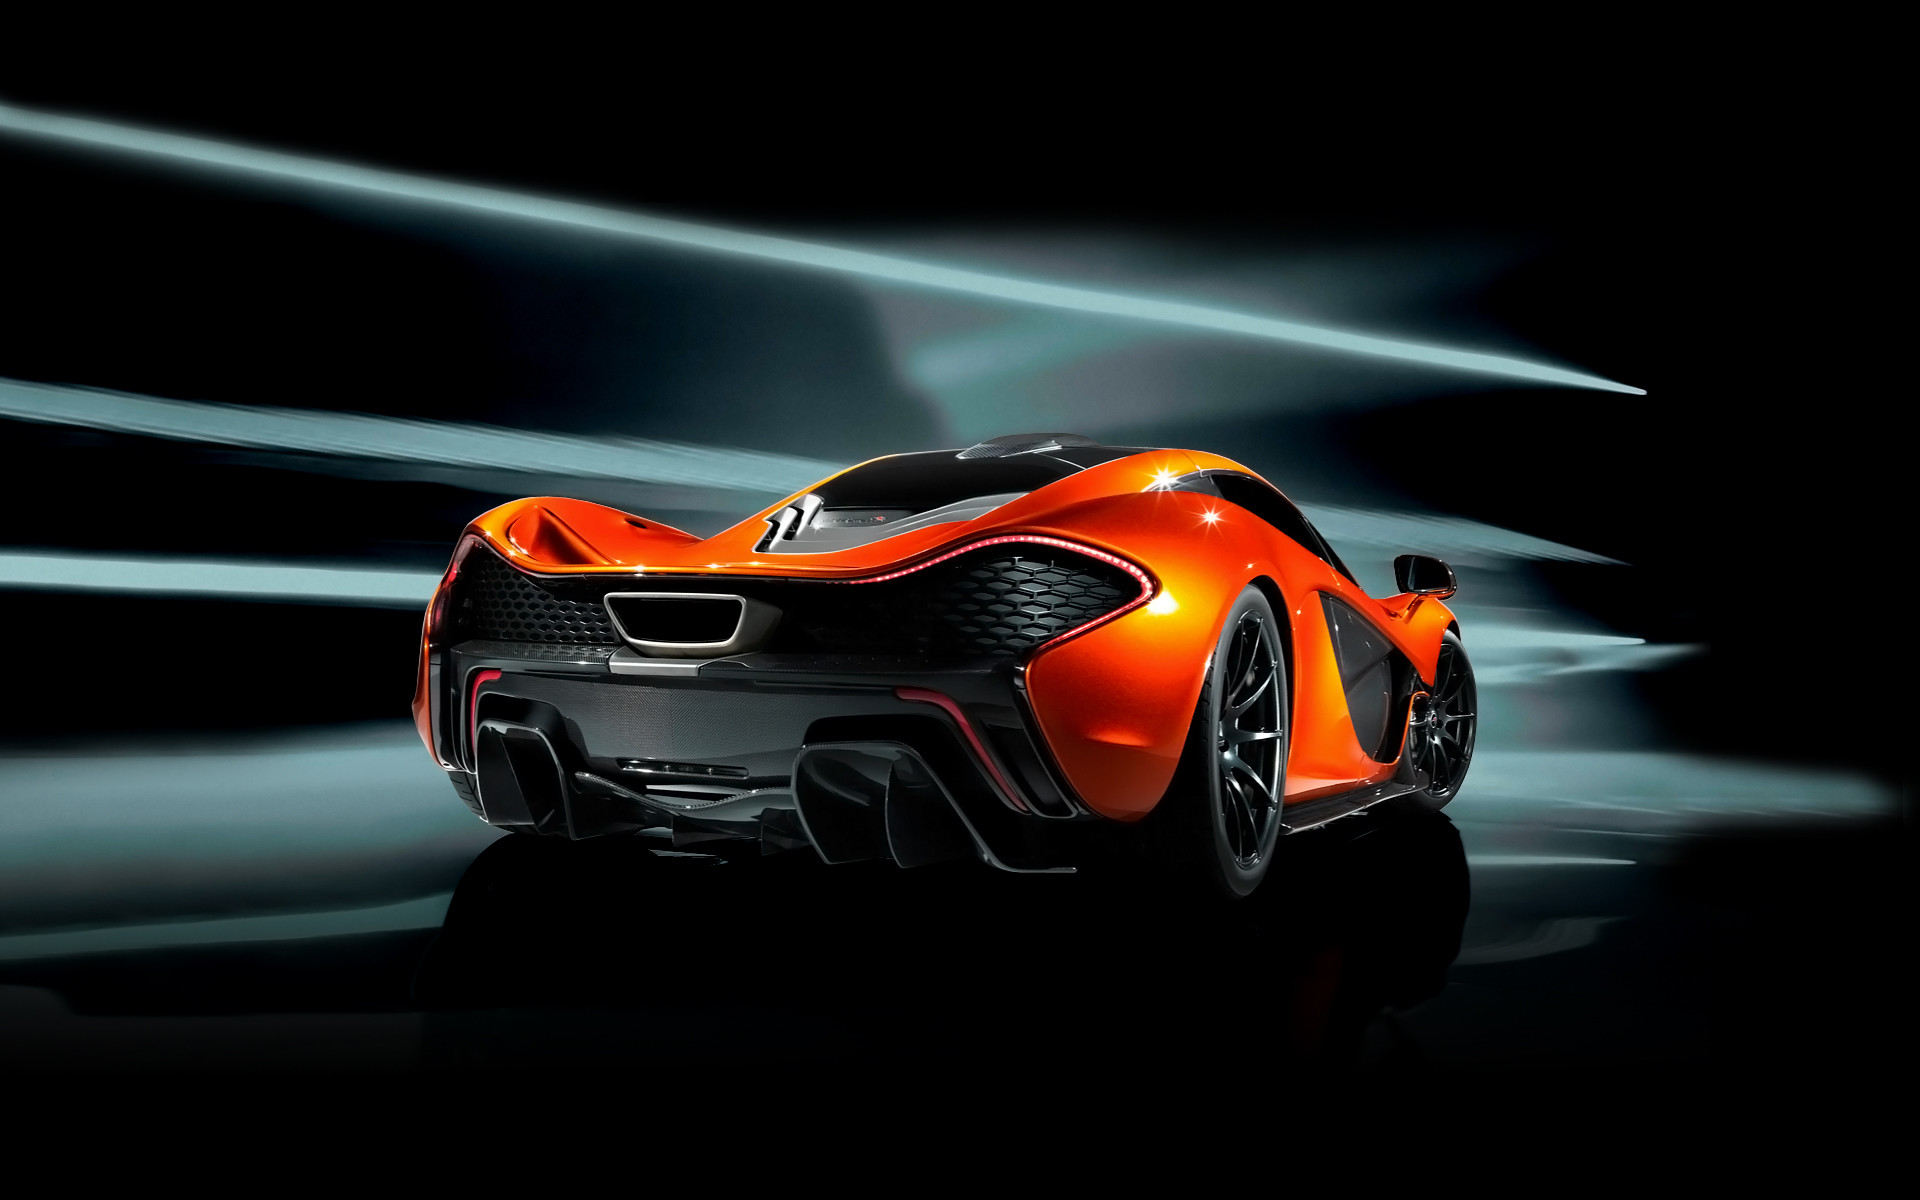 Res: 1920x1200, Daily Wallpaper: Exclusive: The All New McLaren P1 | I Like To Waste My Time